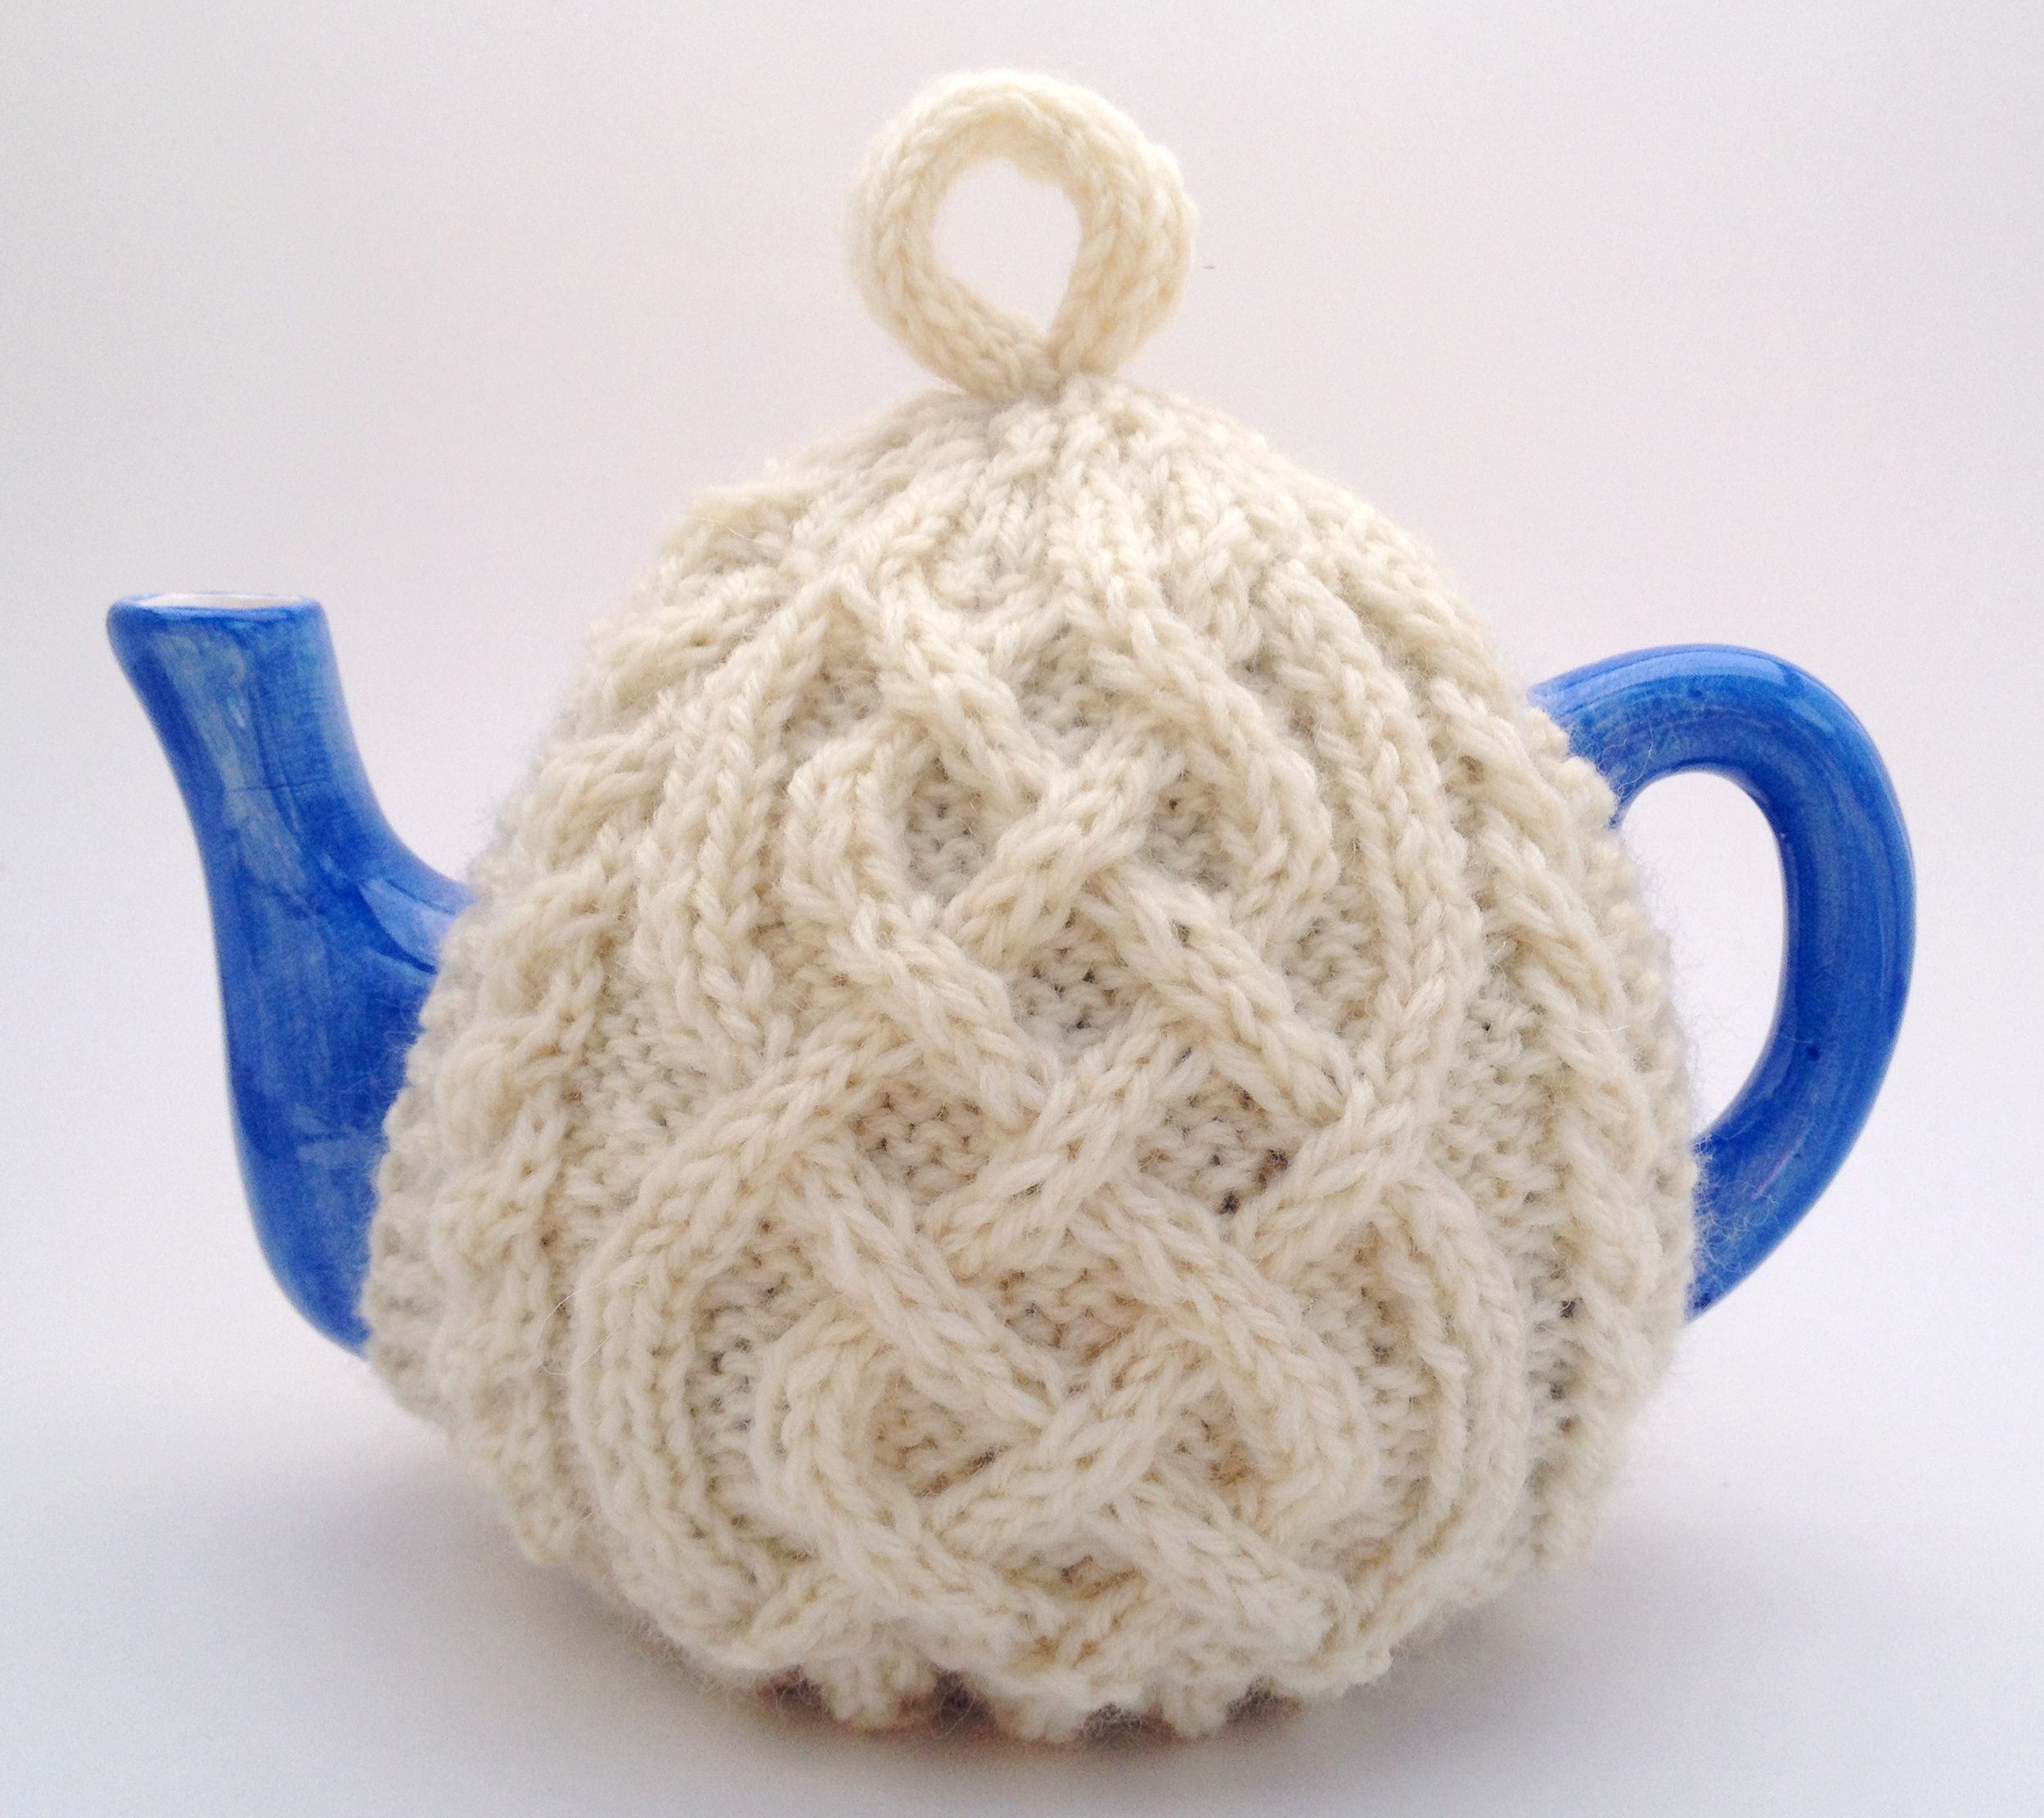 The ultimate irish knit tea cosy celtic knot knit tea cozy for the ultimate irish knit tea cosy celtic knot knit tea cozy for your teapot bankloansurffo Images